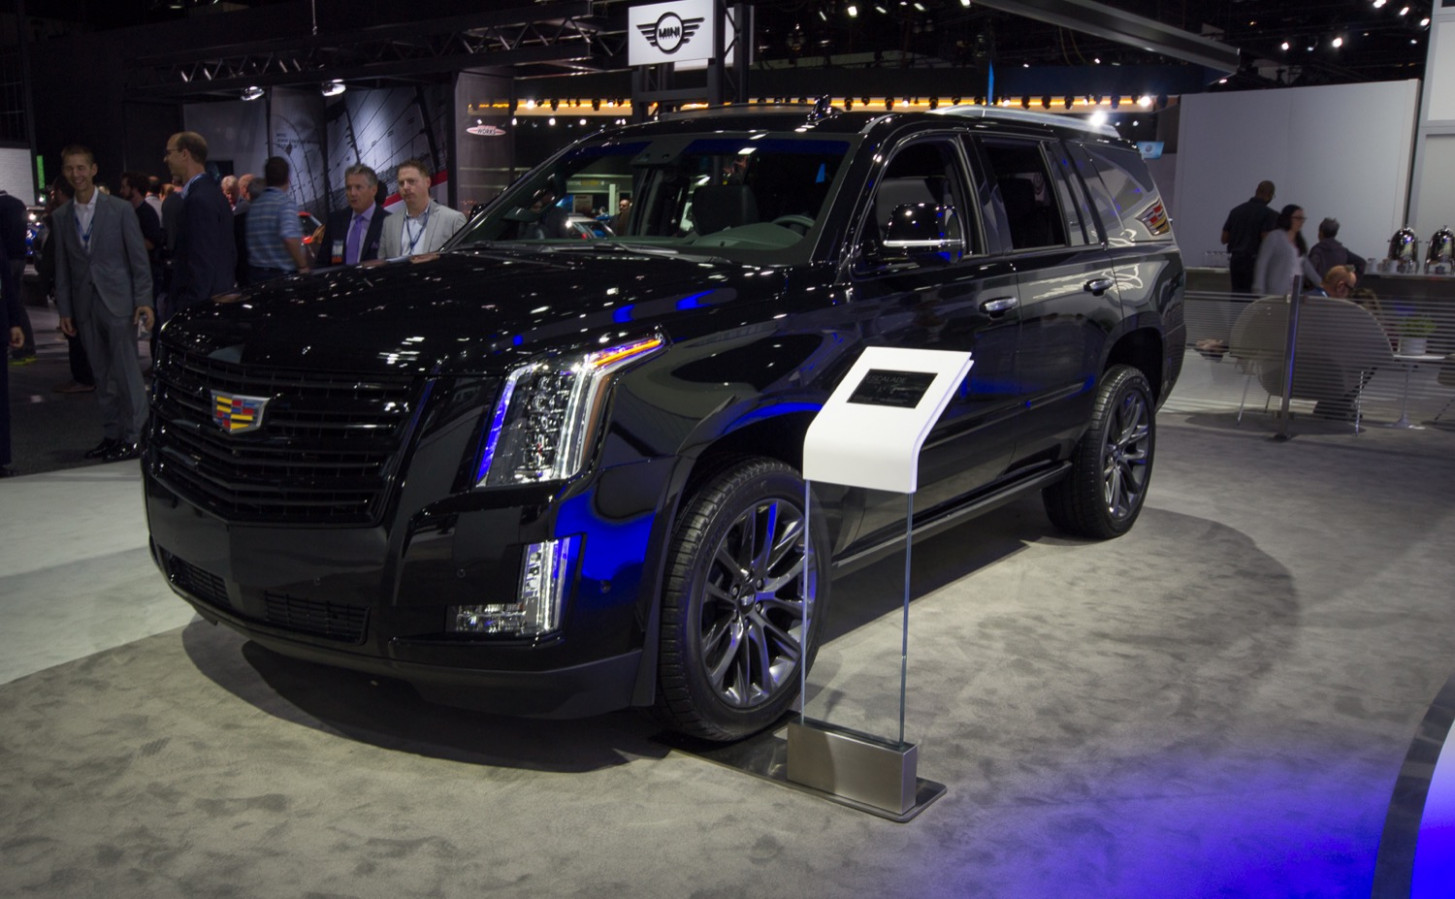 7 Cadillac Escalade Changes, Updates, New Features | GM Authority - 2020 cadillac escalade new features